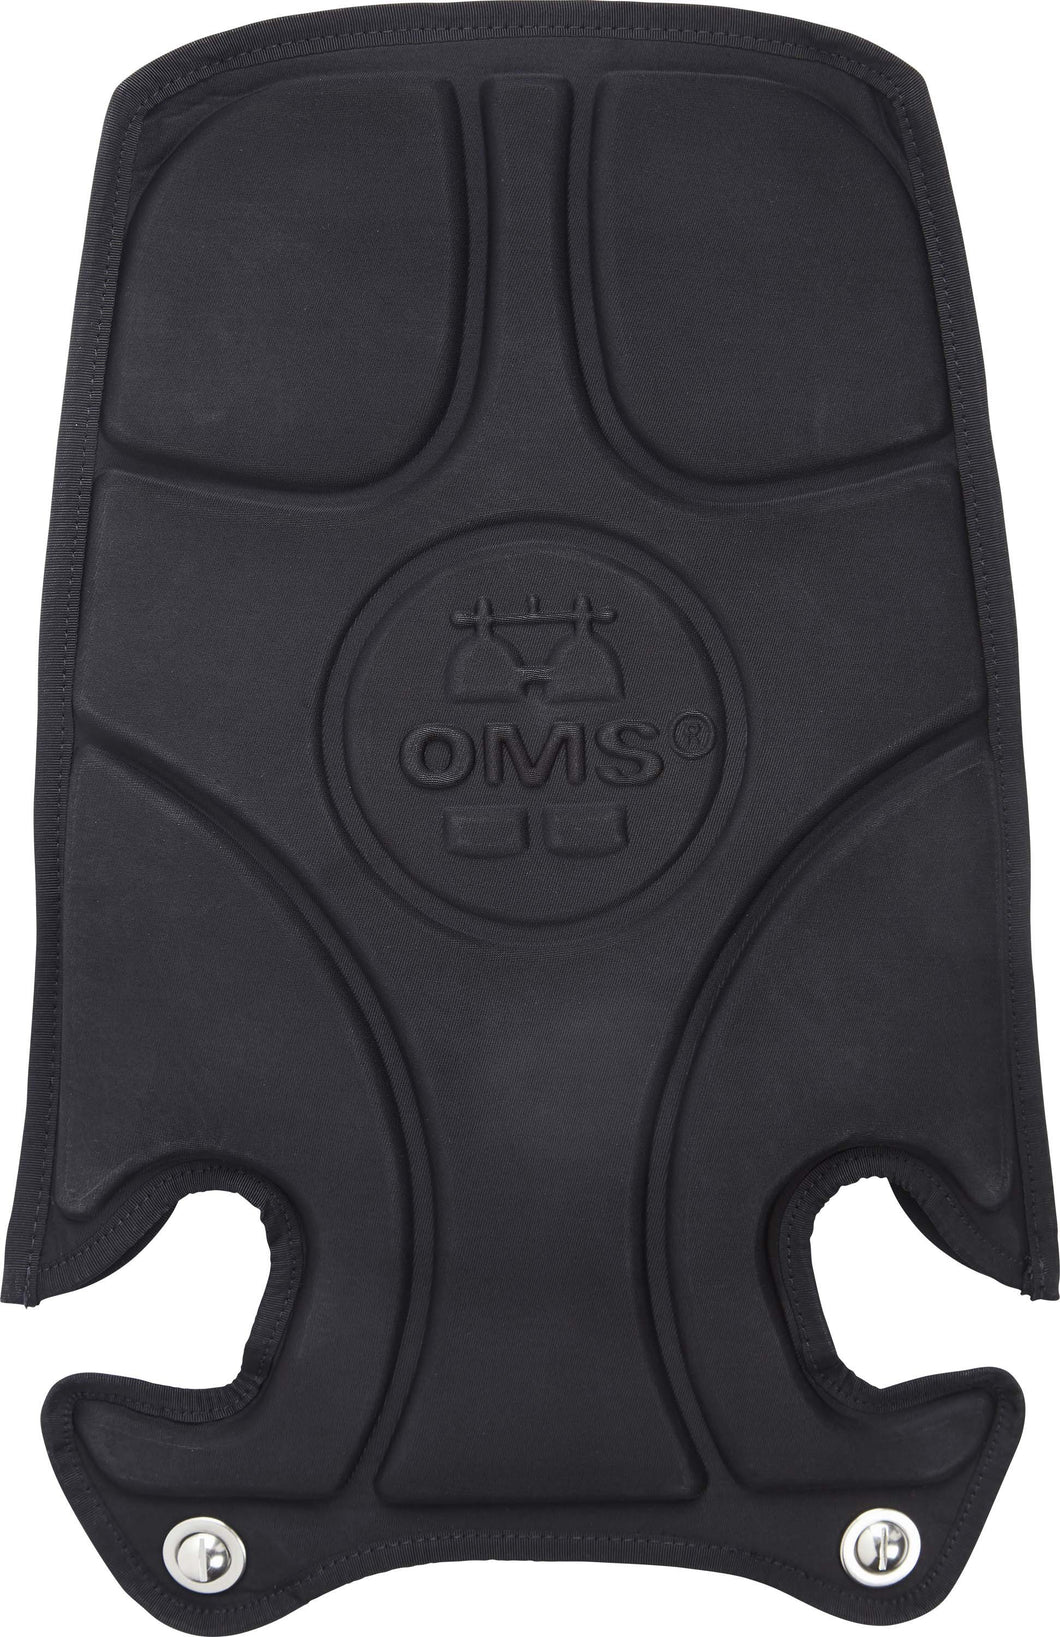 OMS Back Pad NEW (includes Bolts Kit)